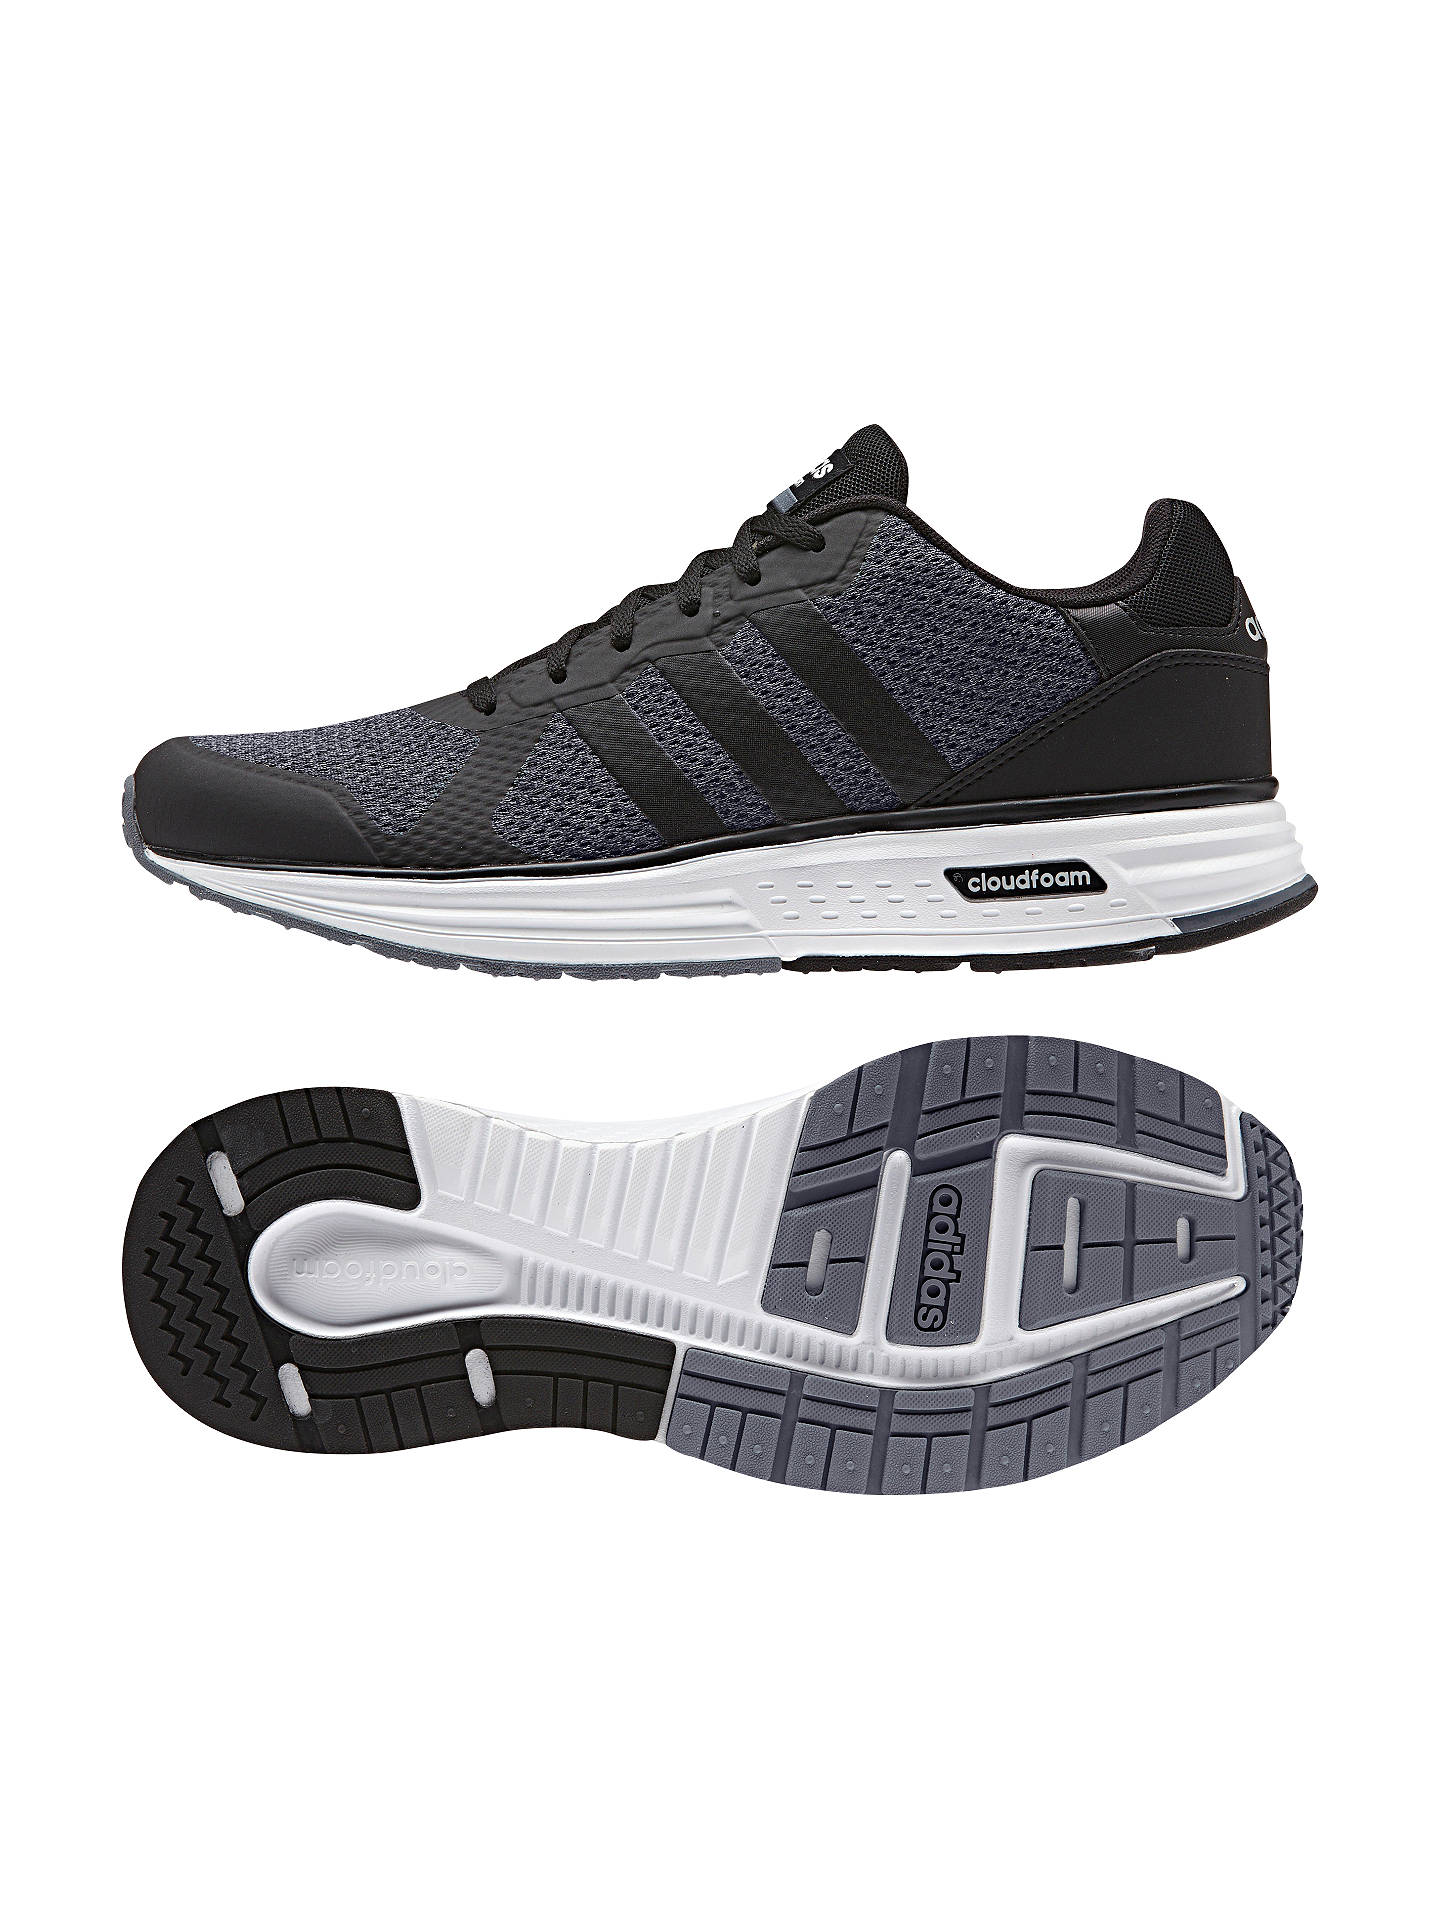 undefeated x sports shoes free delivery Adidas Neo Cloudfoam Flyer Men's Trainers, Grey at John ...